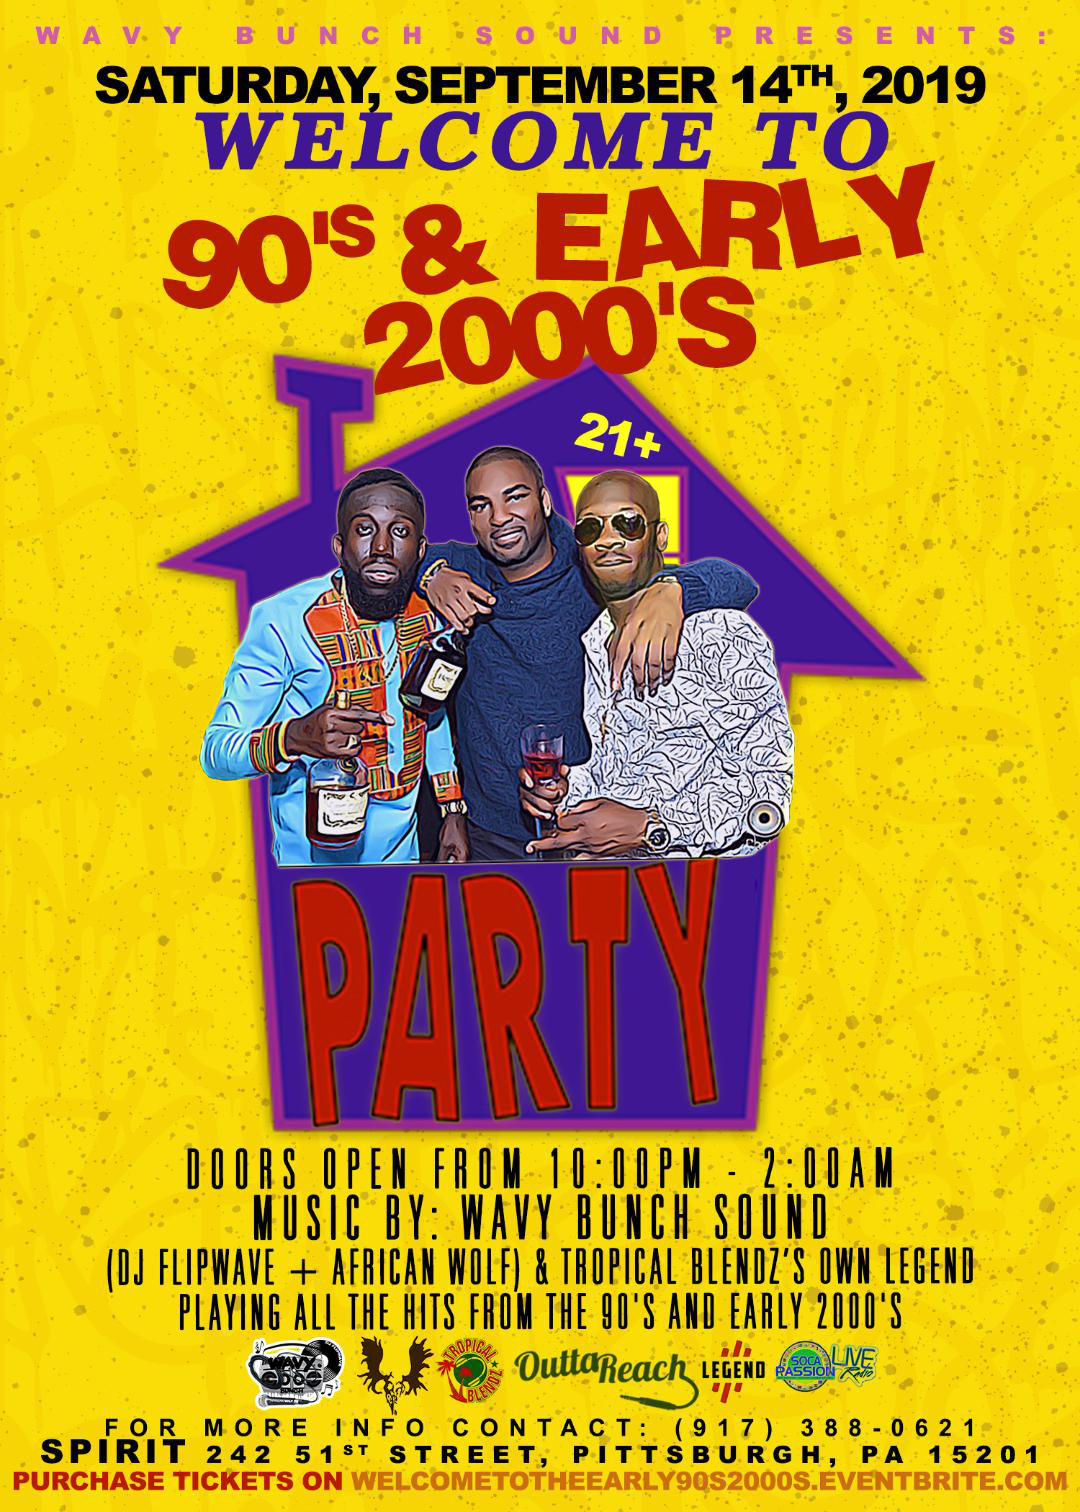 Hall: Wavy Bunch Sound presents: Welcome to The 90's & Early